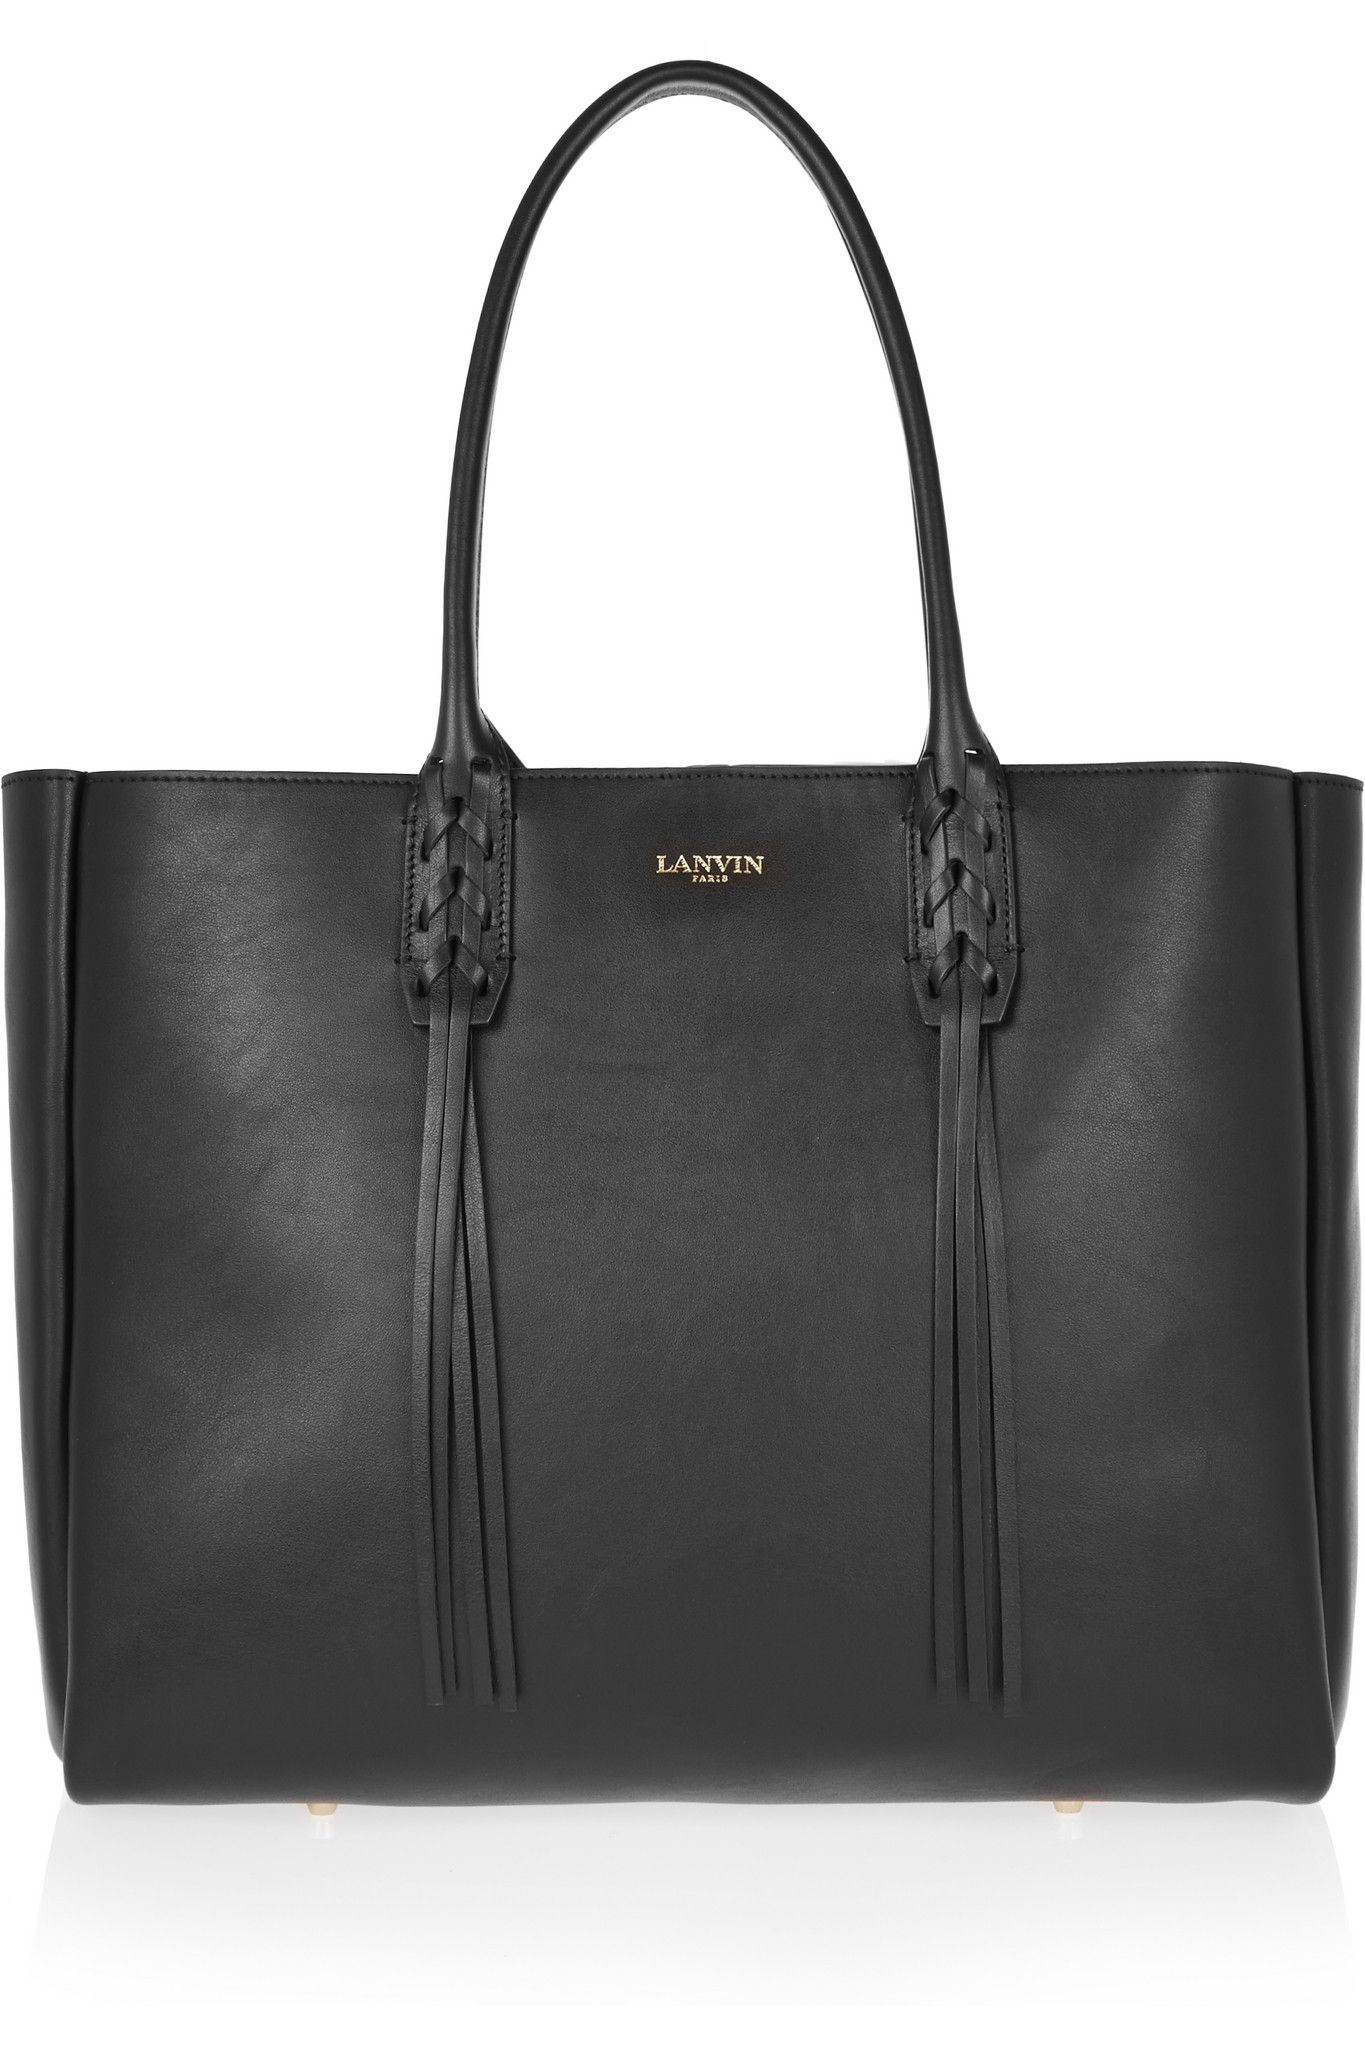 LANVIN The Shopper small leather tote £785.00 https://www.net-a-porter.com/products/589620